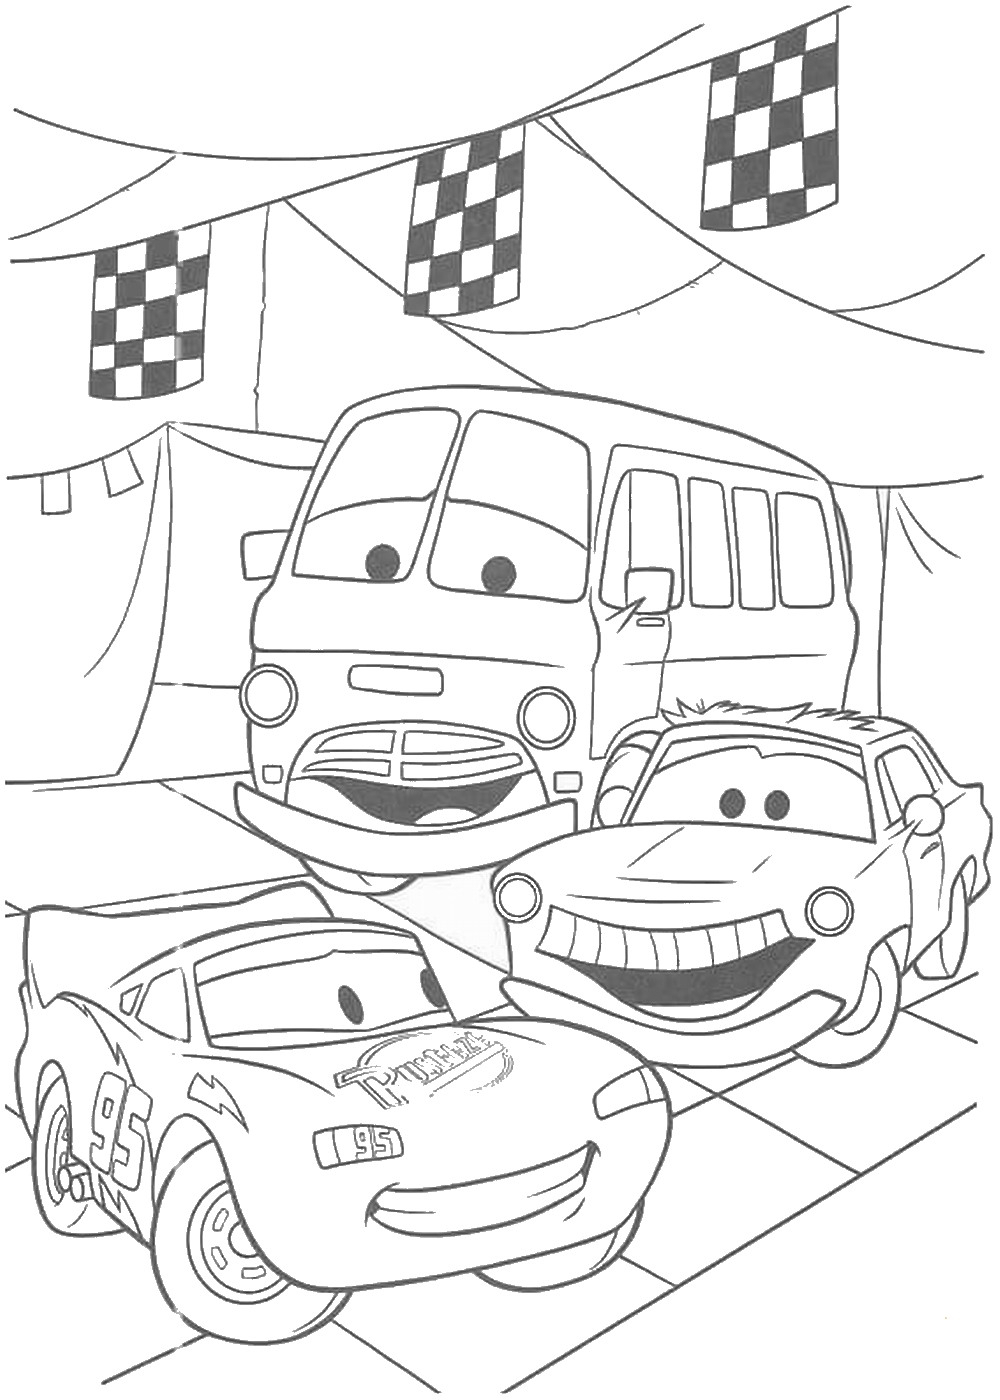 In Cars Coloring Pages From the 2 Disney Movies – Fun Time Collection Of Car Coloring Pages Disney Cars the Movie to Print Grig3 Download